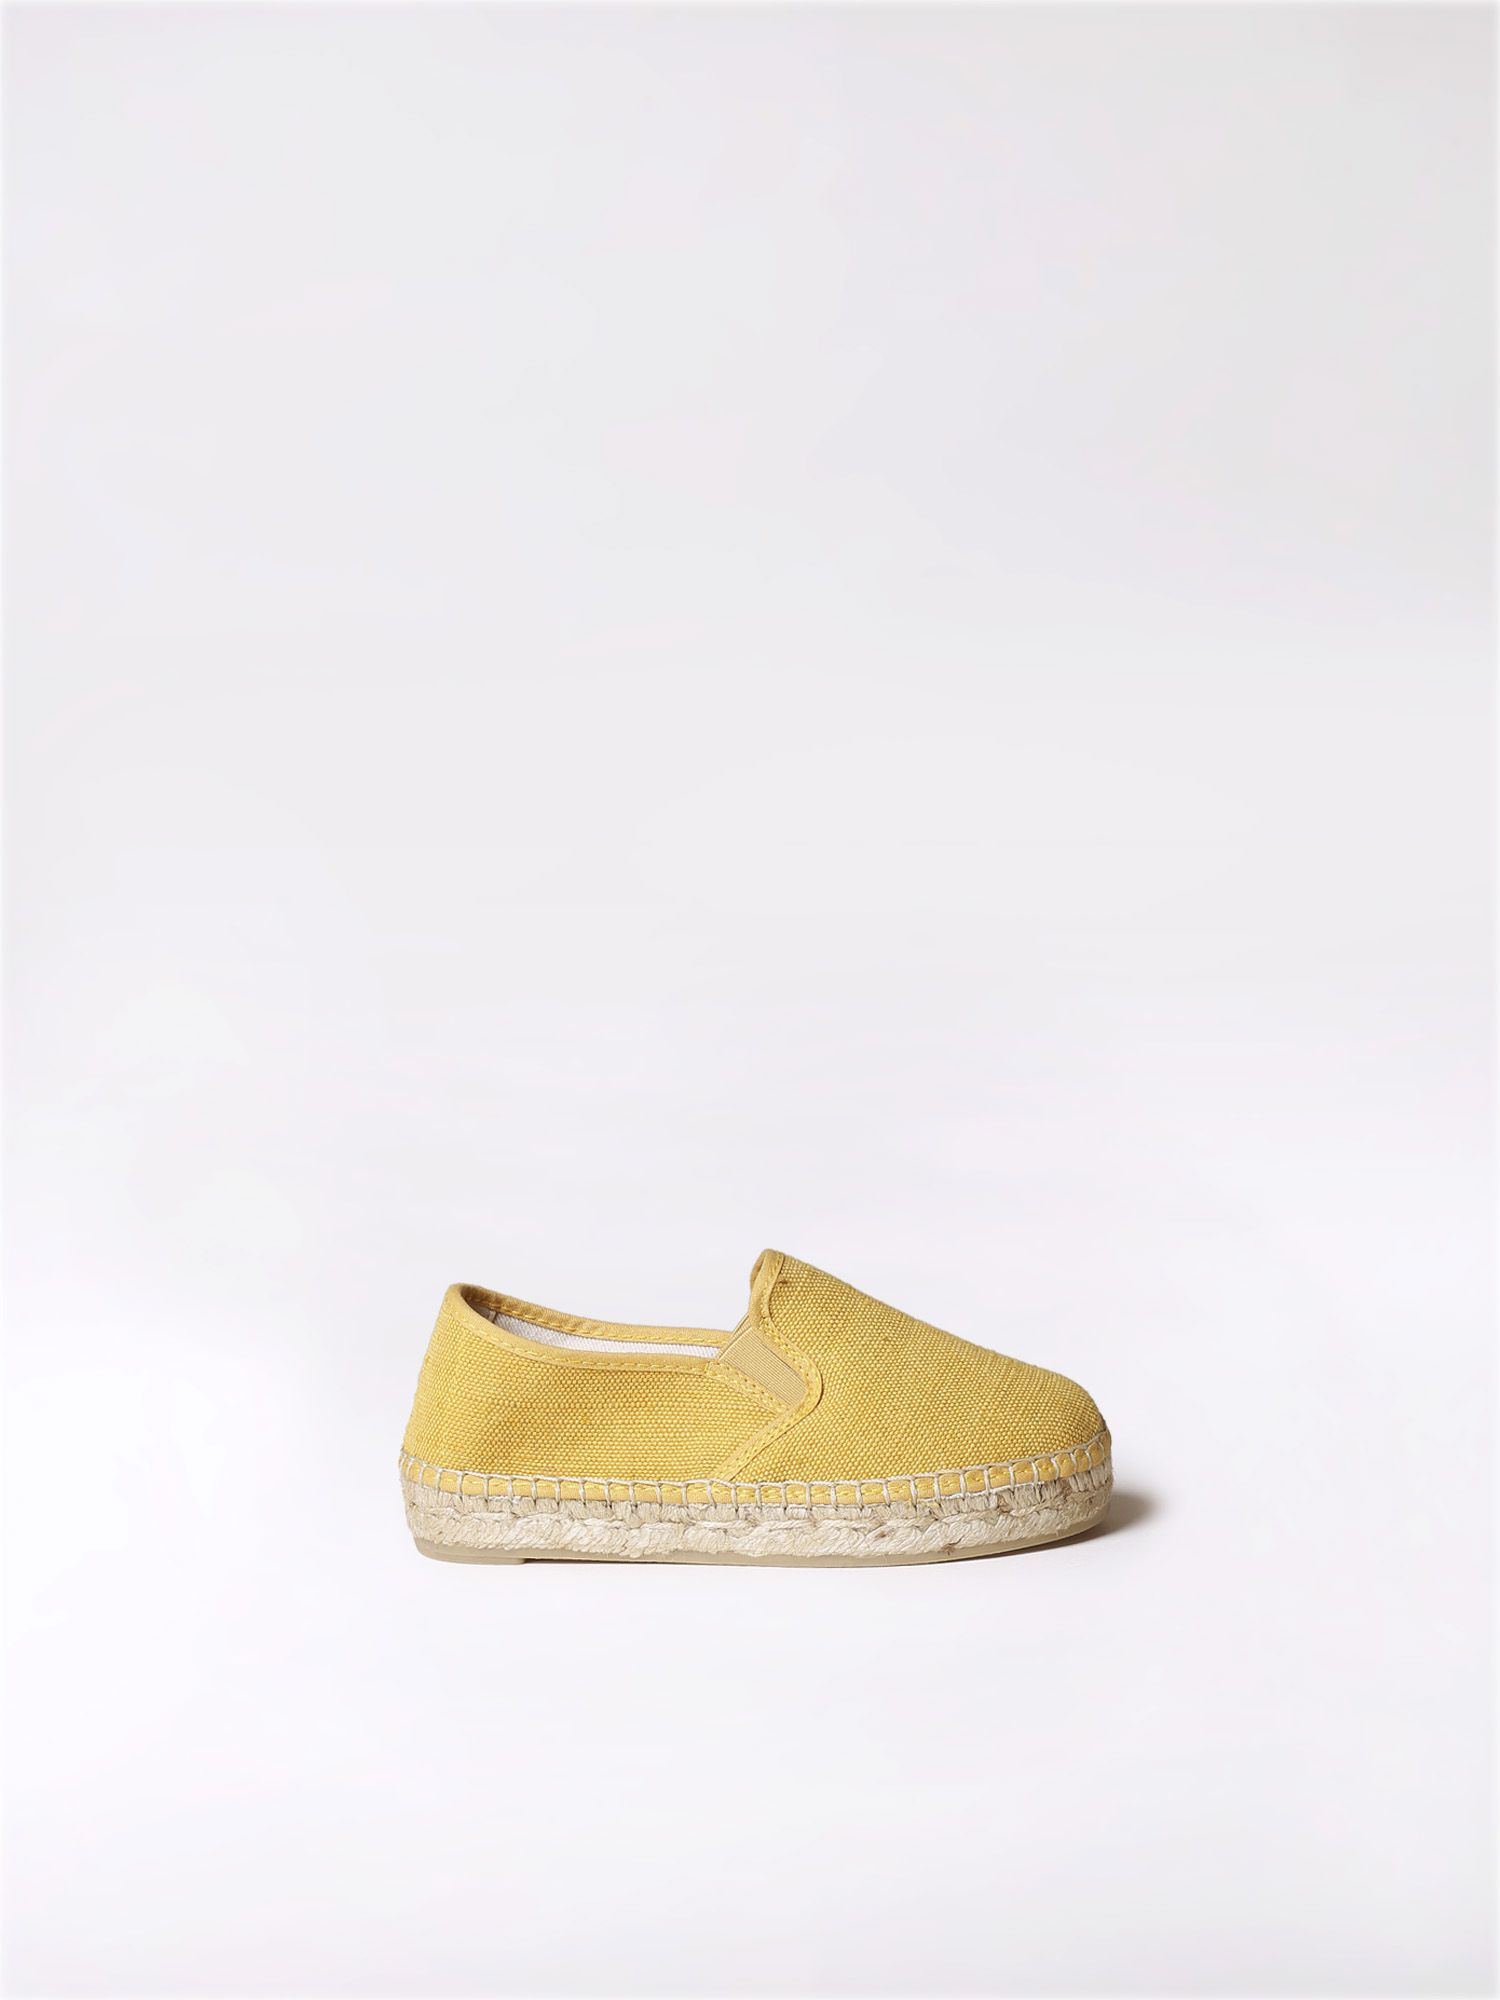 Vegan espadrilles for kids - EFES-V